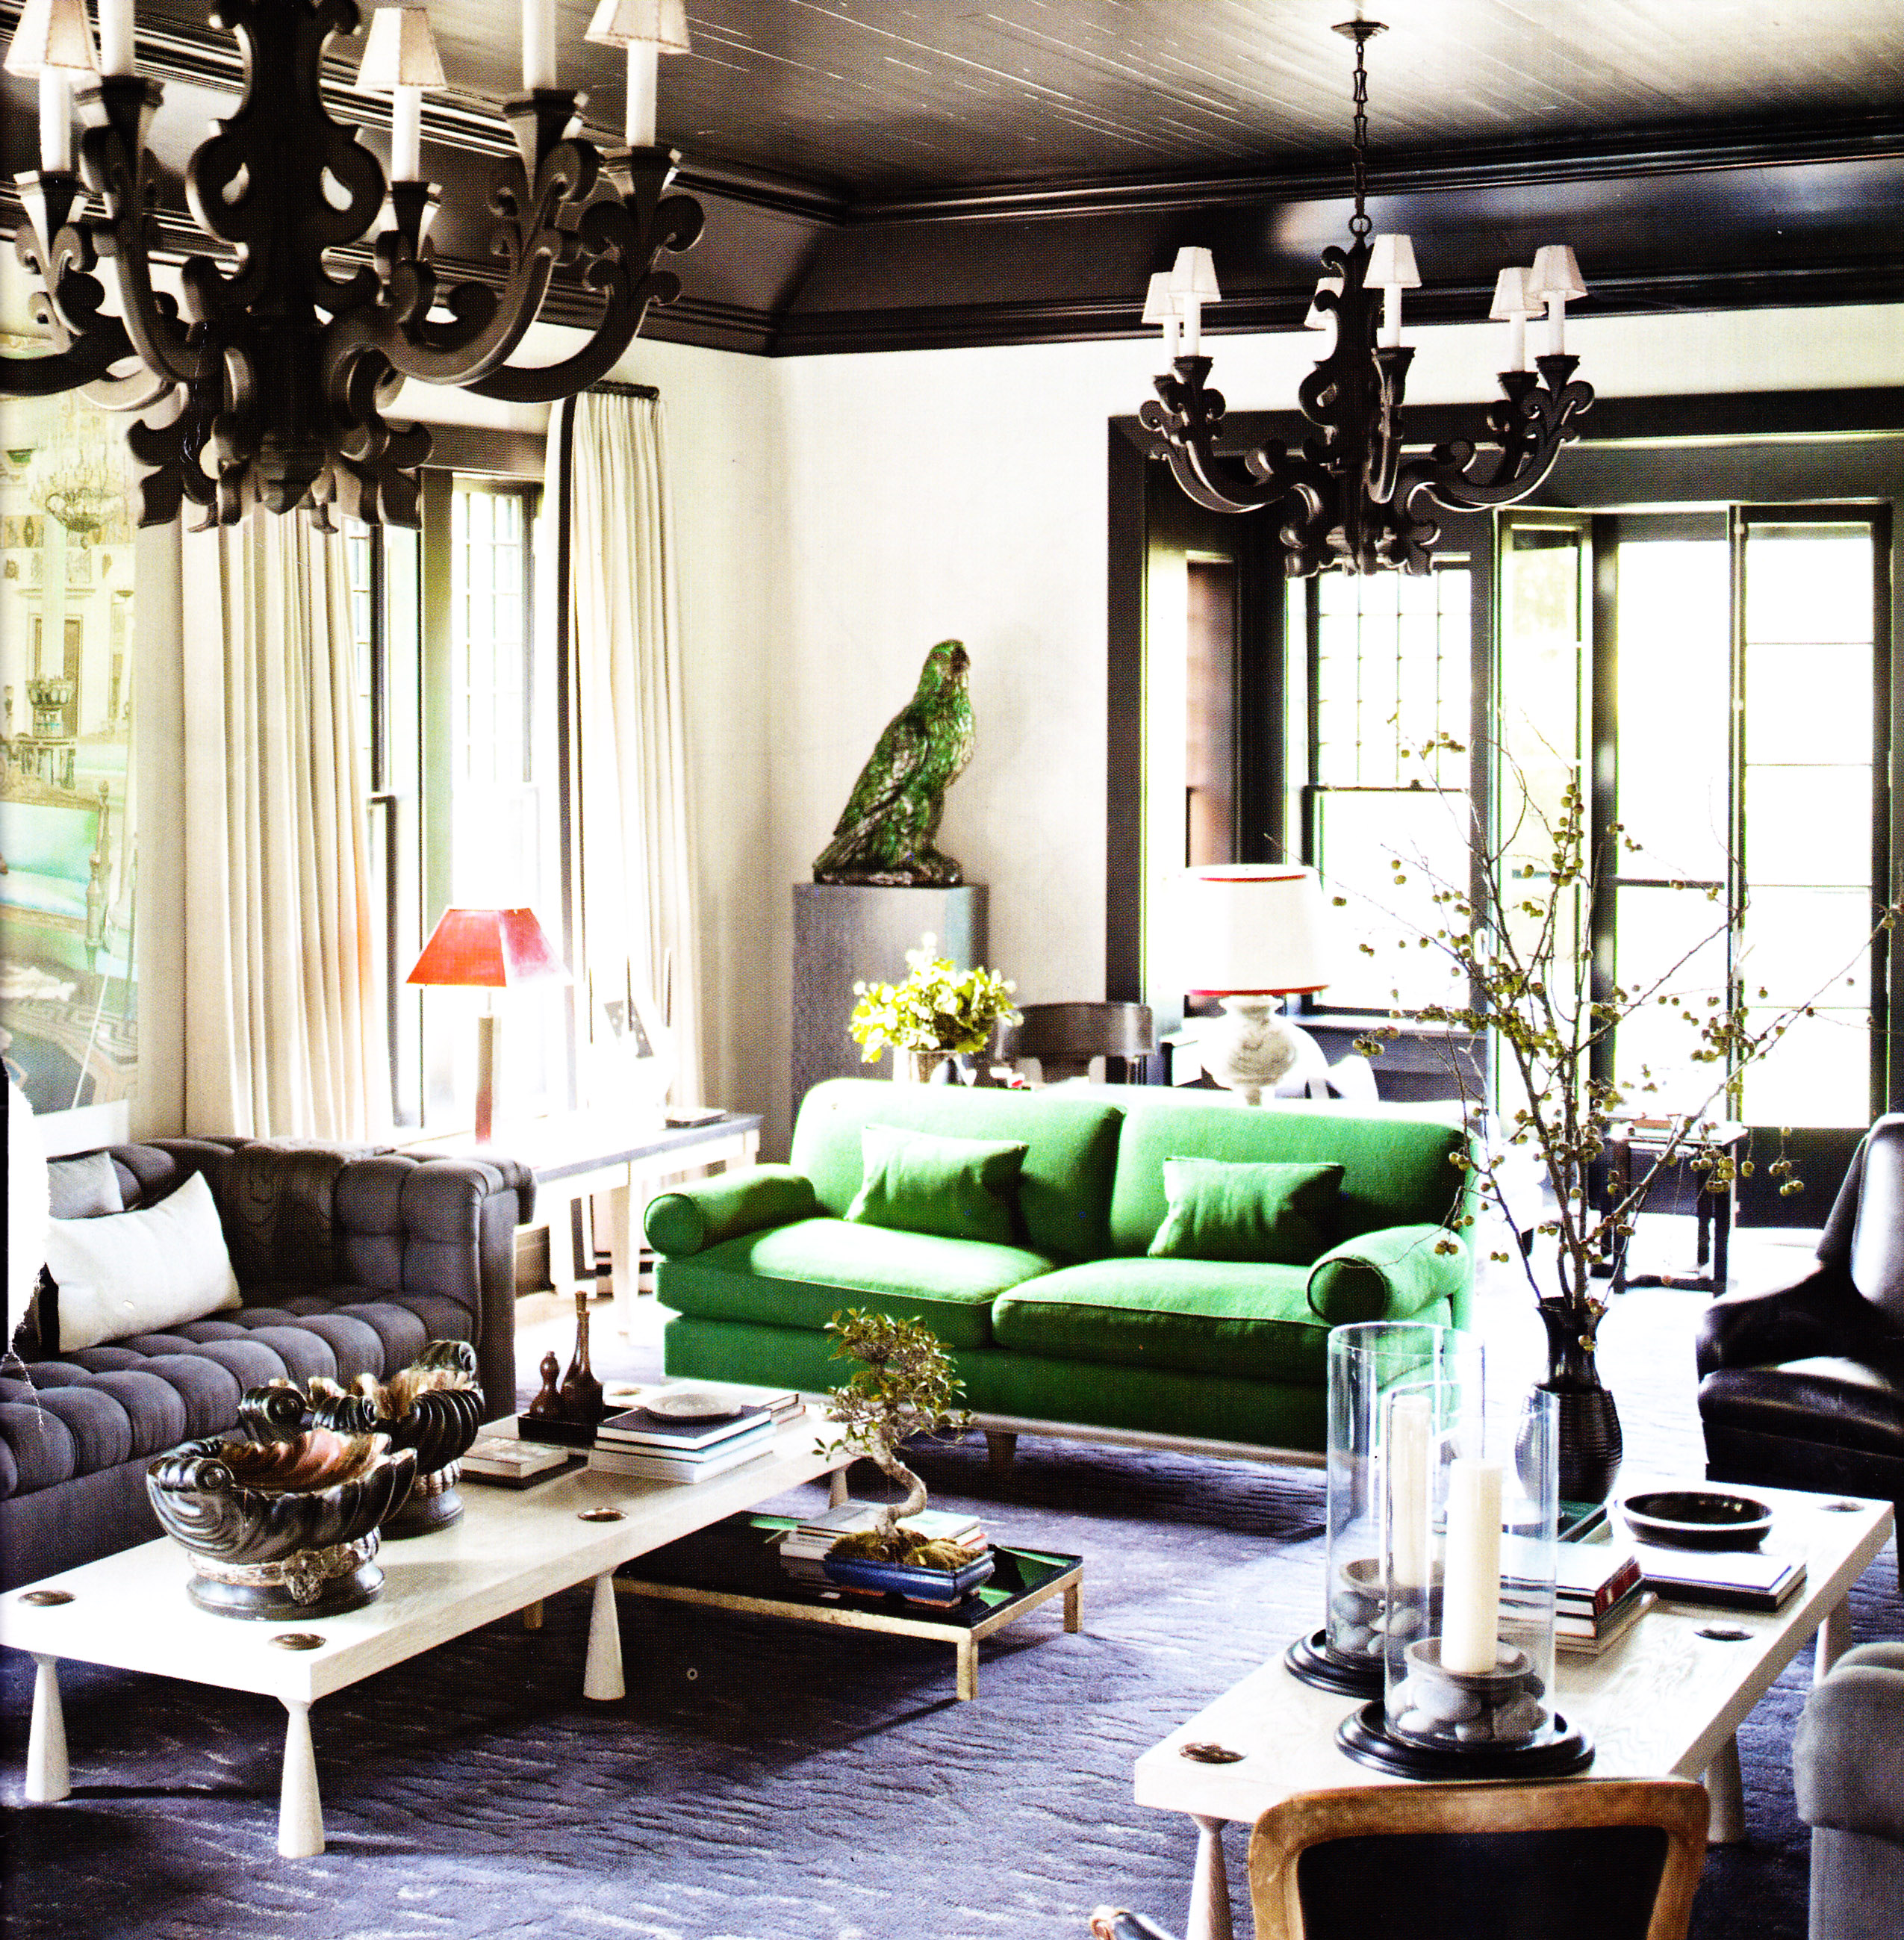 Best Black Ceiling Black Ornate Pendents Green Sofa Living Room This Month